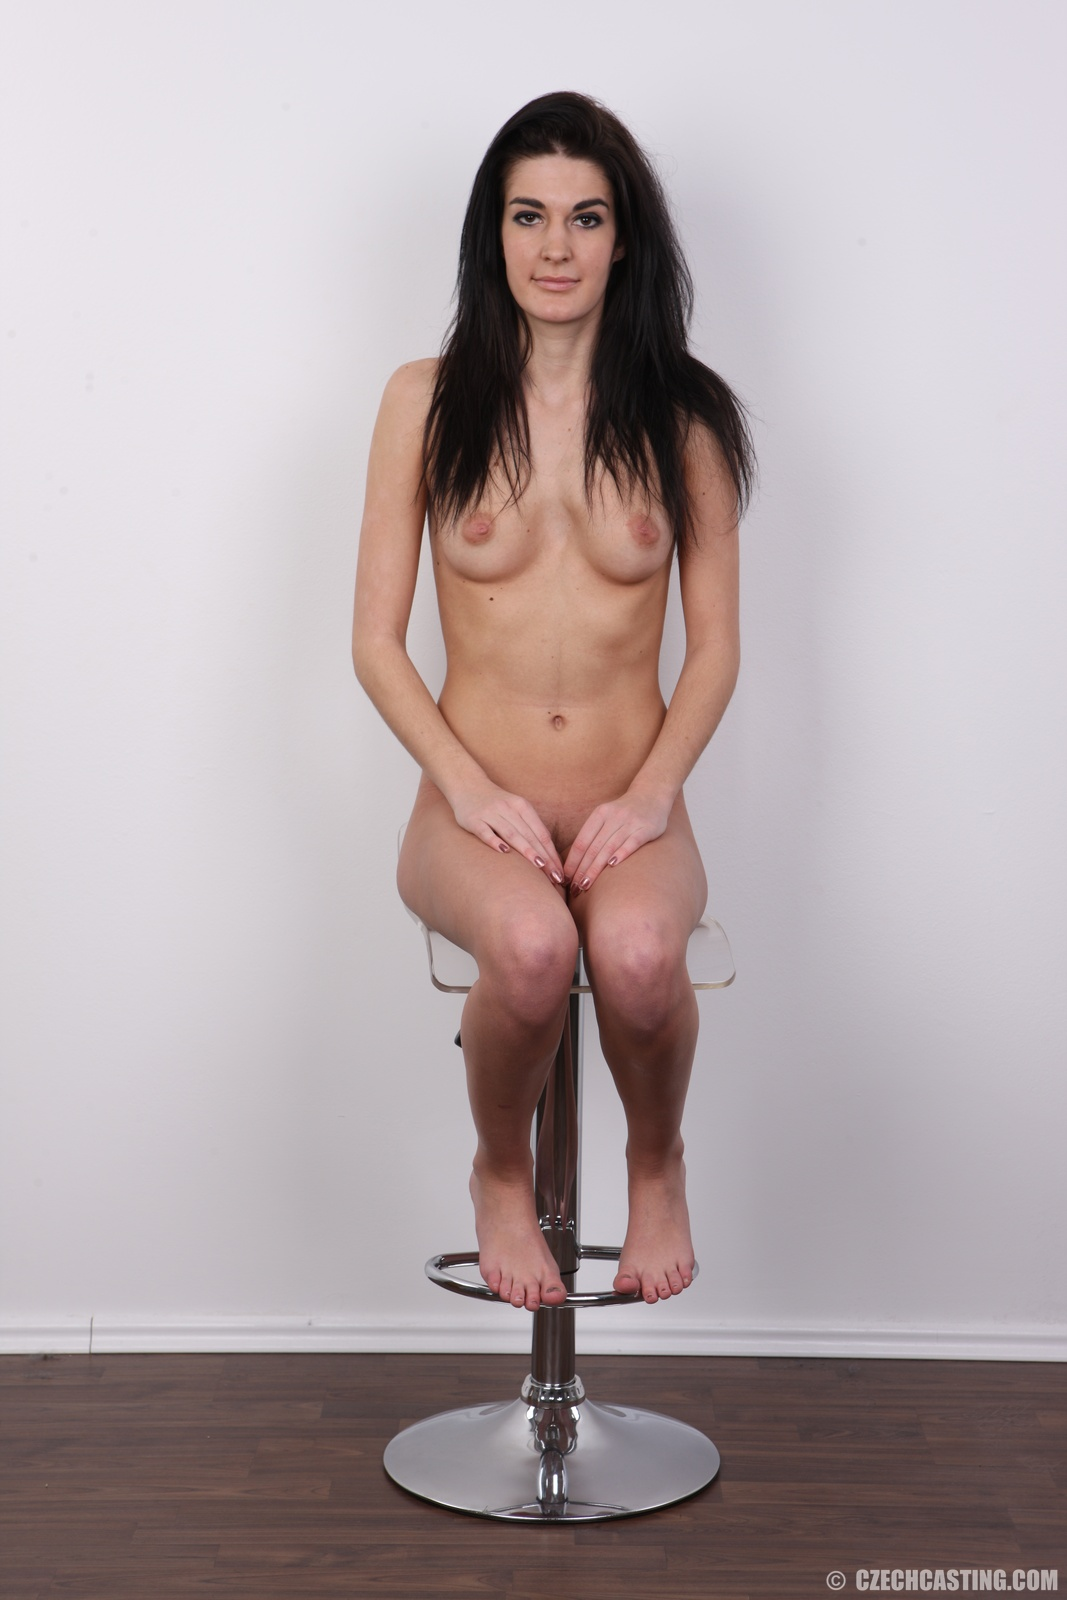 Czech Casting 567872 Anna Anna Is A Stunner. I Adored The Casting With Her. A Pretty Blonde With A Mouth Big Enough To Swallow Three Cocks At The Same Time. She Is A Proud Owner Of Firm Tits And A Juicy Ass. She Confessed She Adored BDSM. She Would Love To Be Fucked Painfully